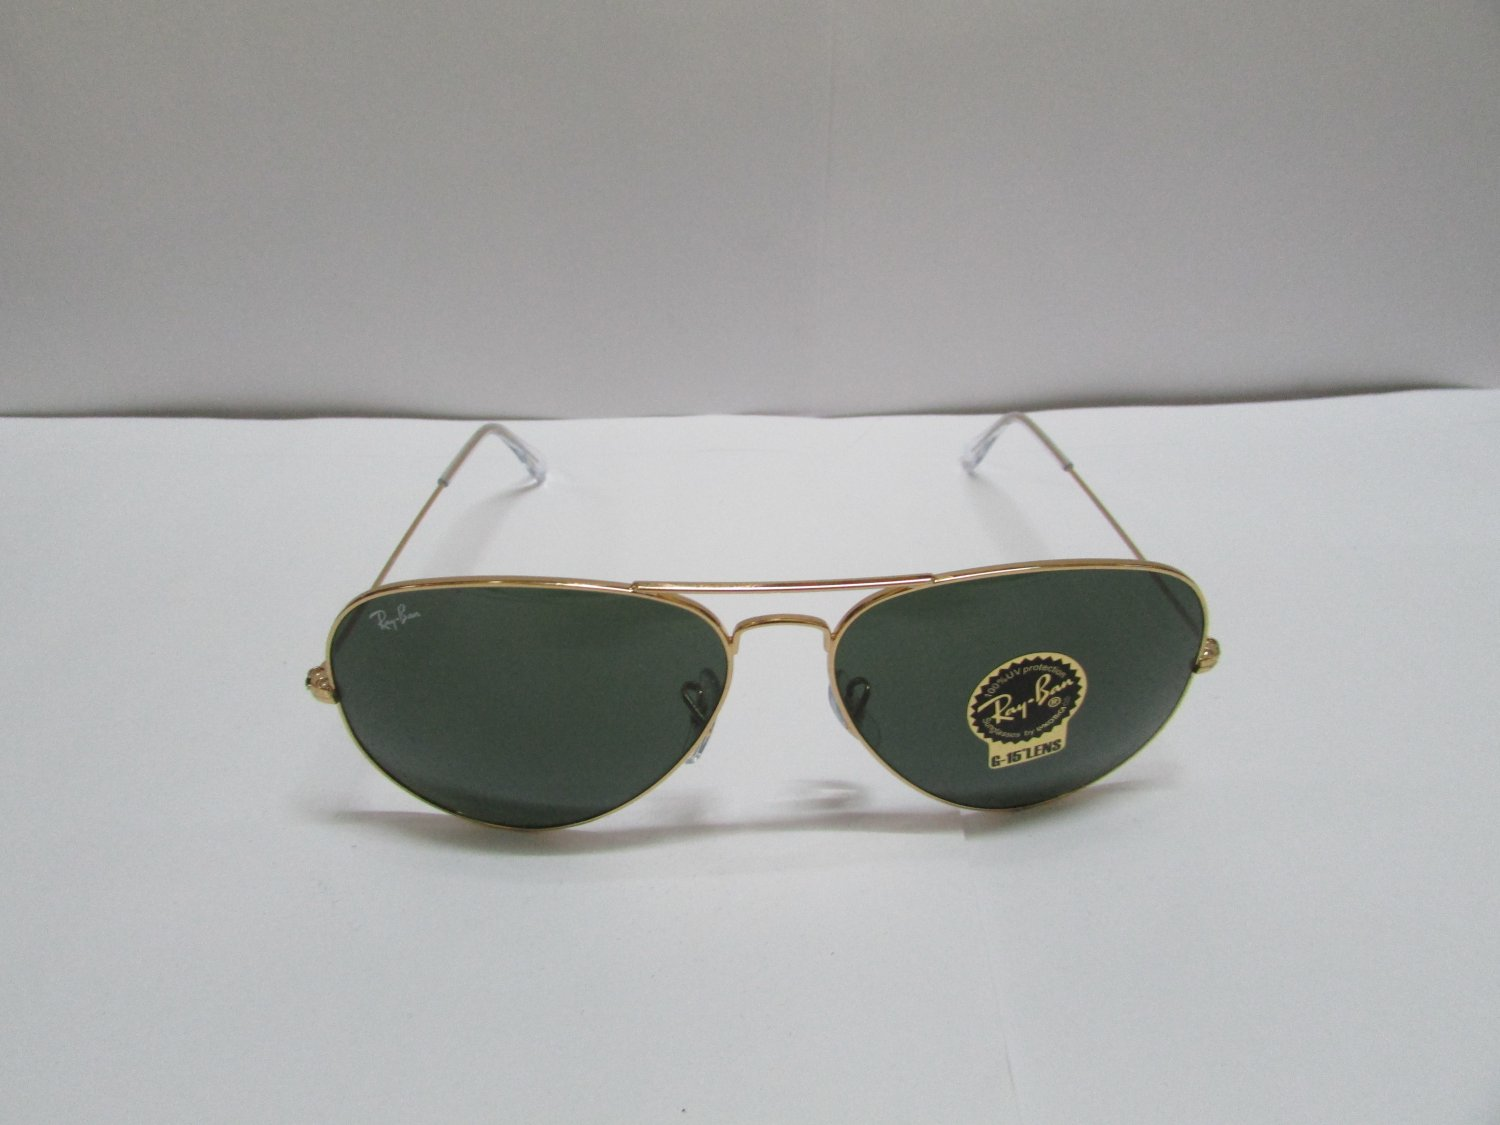 eb3ecbc81 RAY BAN SUNGLASSES AVIATOR CLASSIC 3025 L0205 58-14 Gold 100% ORIGINAL  BRAND NEW